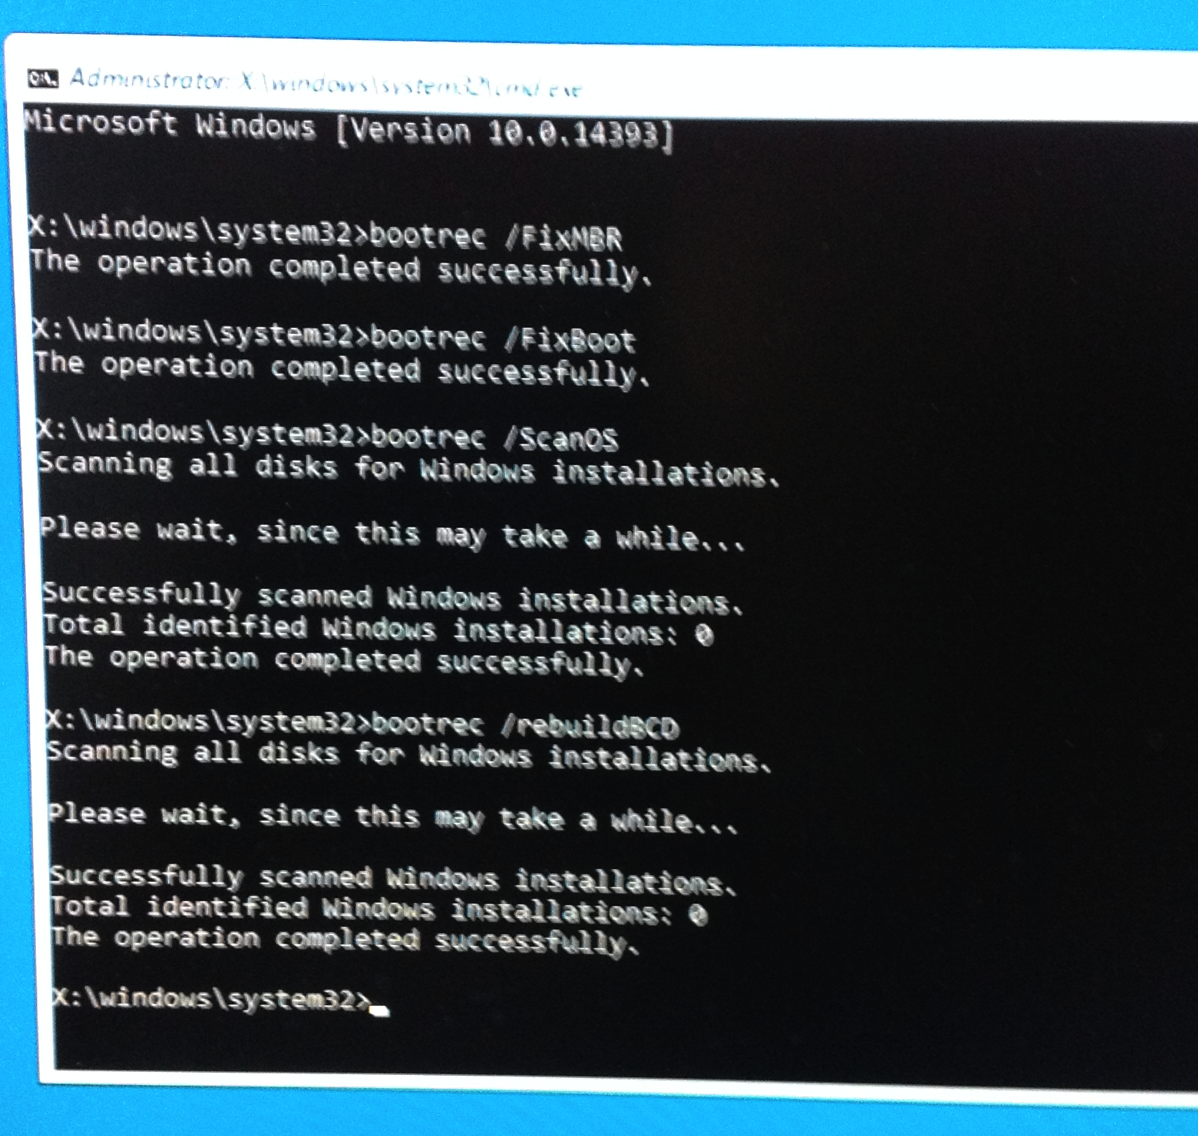 Figure 6 Command Prompt wizardry with 4 commands